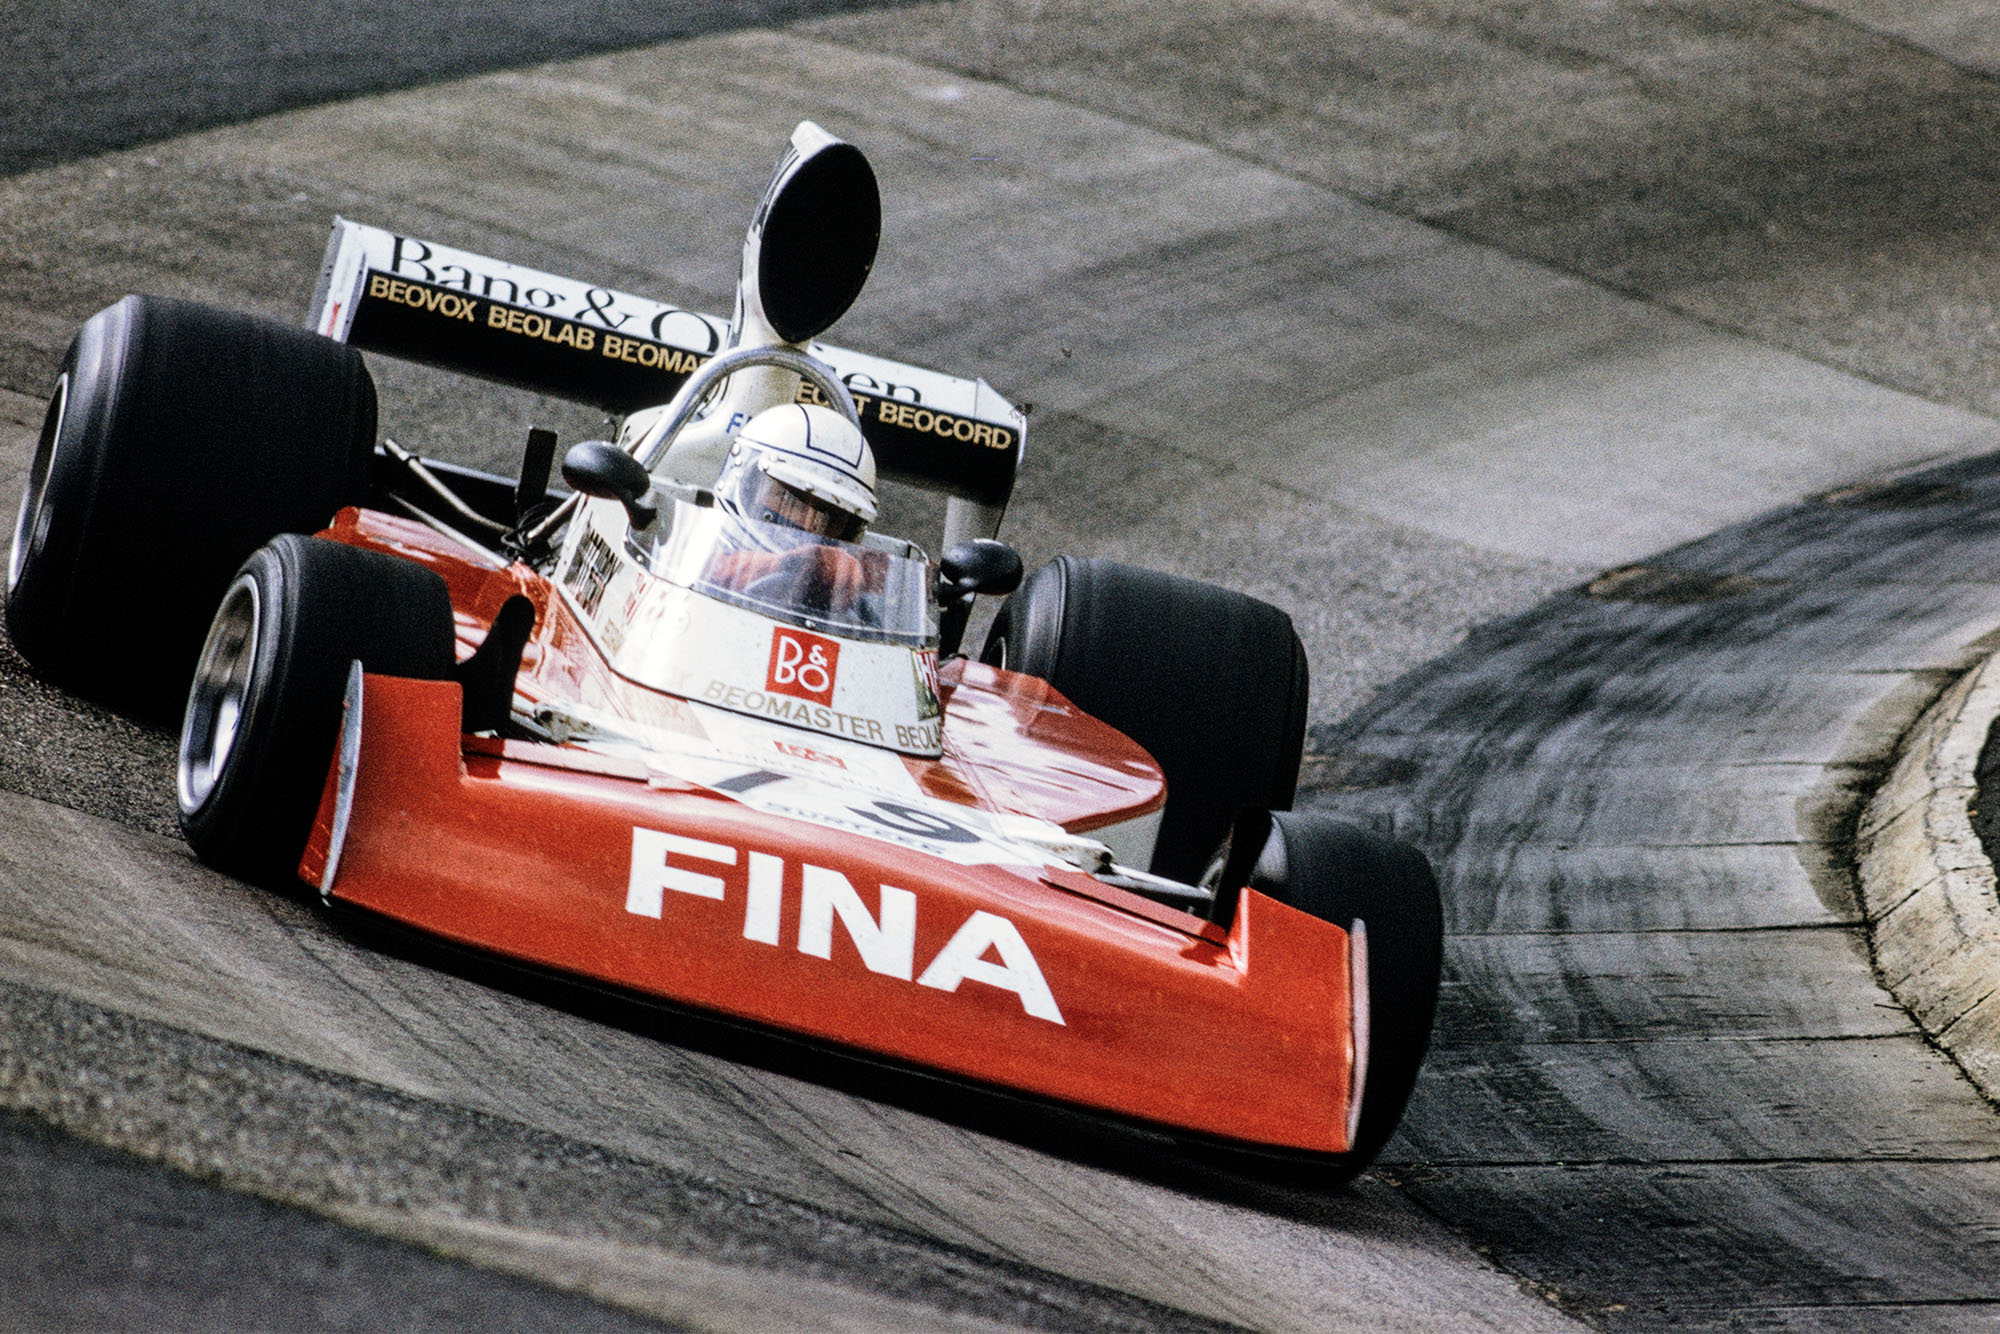 Jochen Mass drives through the Karussell in his Surtees at the 1974 German Grand Prix, Nurburgring.